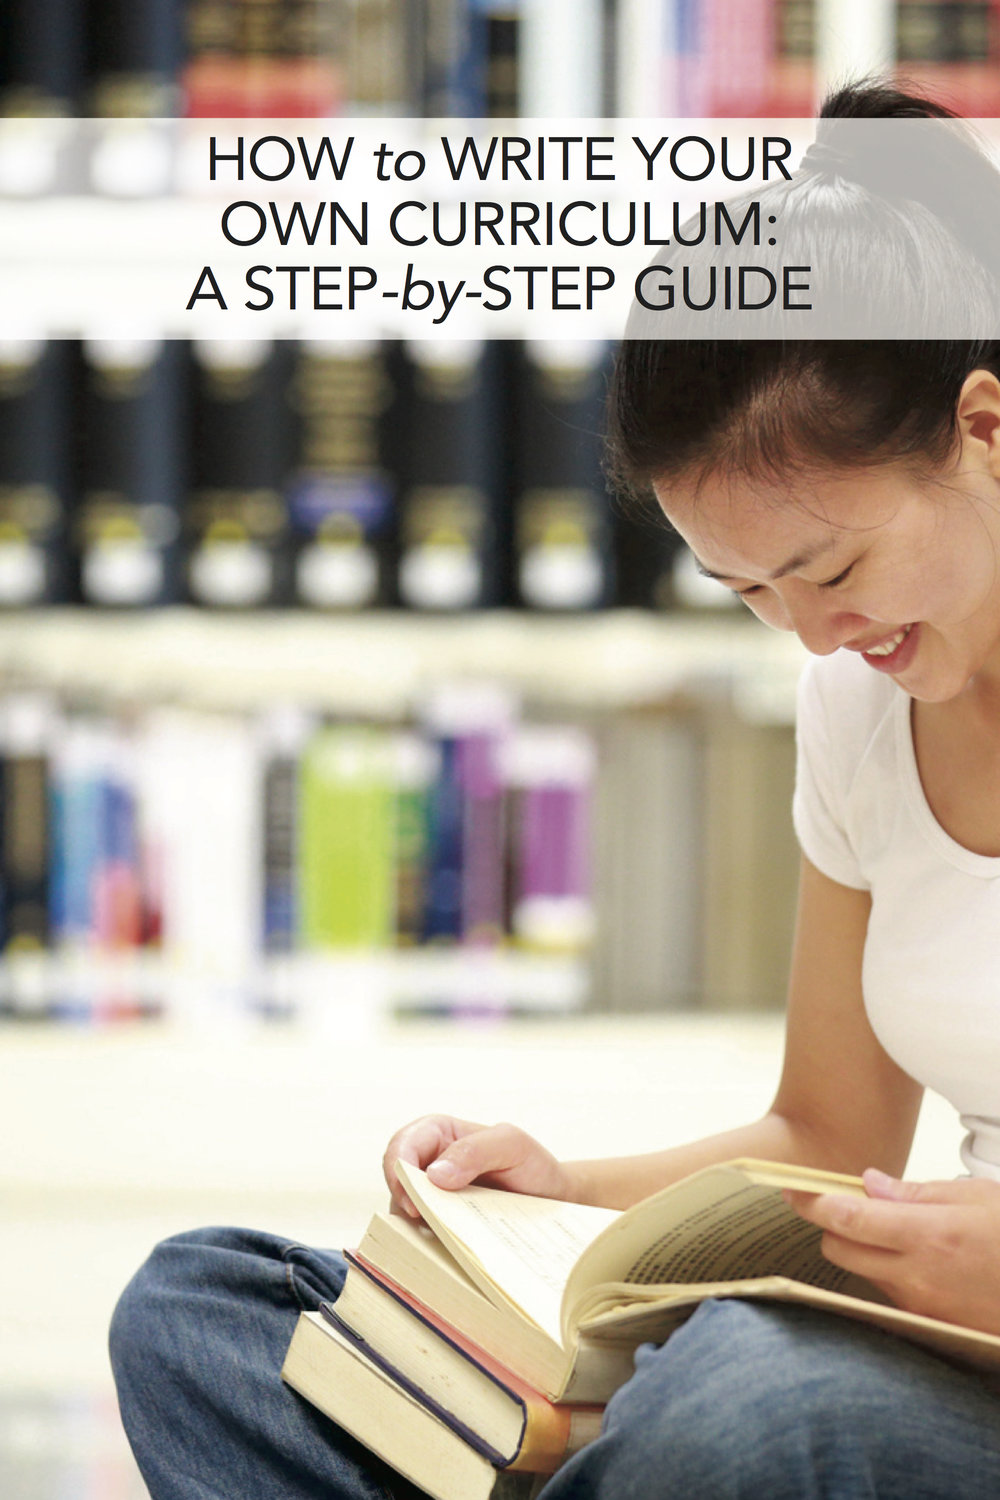 Our step-by-step guide to creating the customized curriculum of your dreams from scratch.